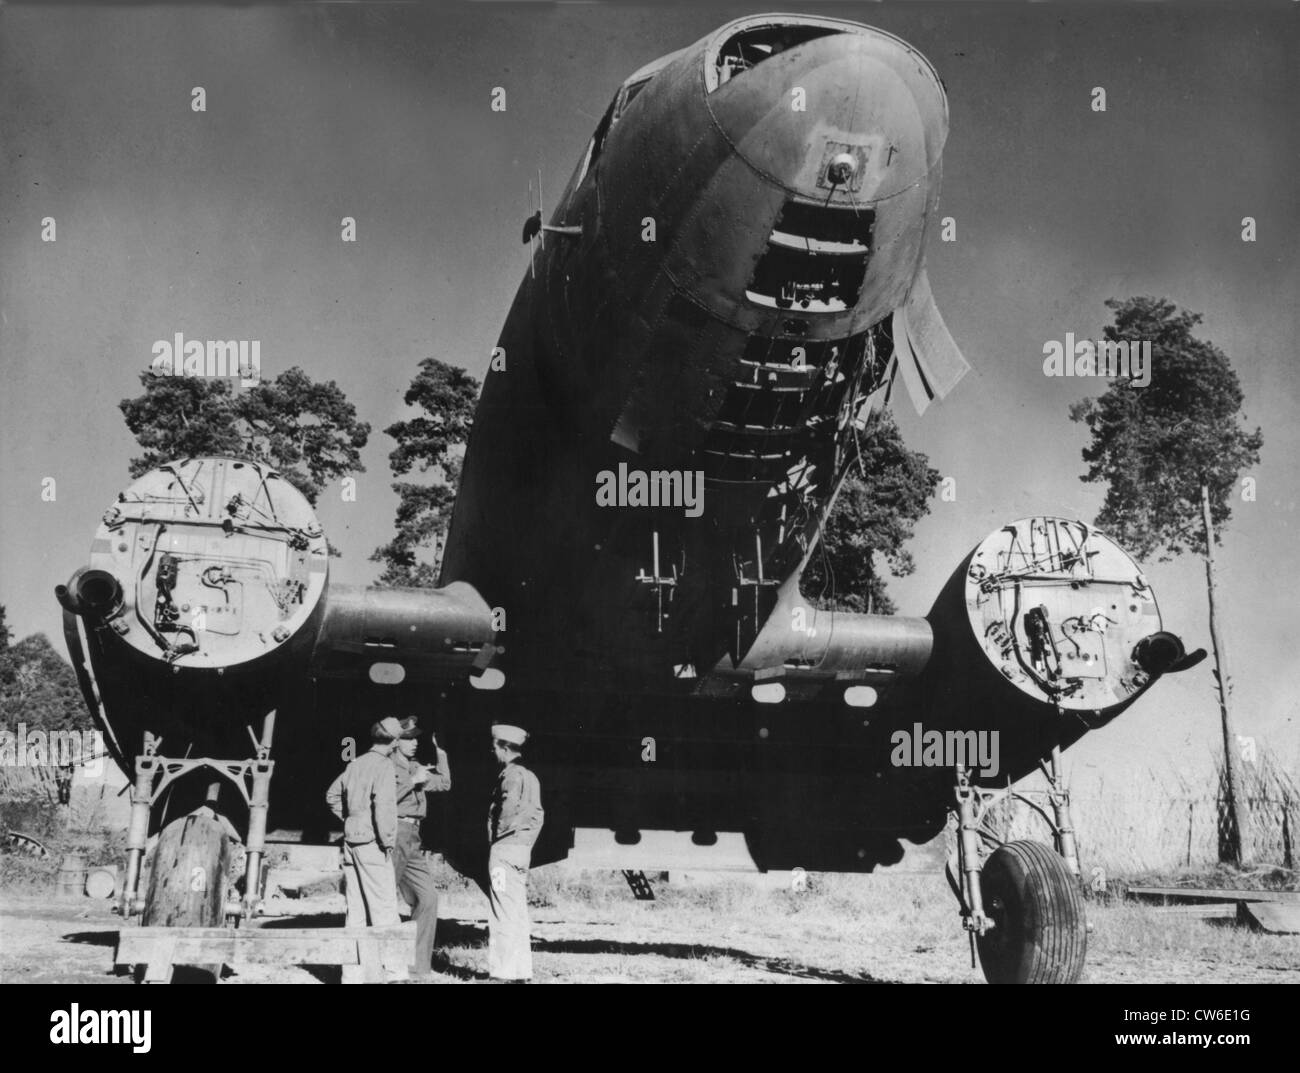 American cargo plane dismantled for salvage in China, 1944 - Stock Image